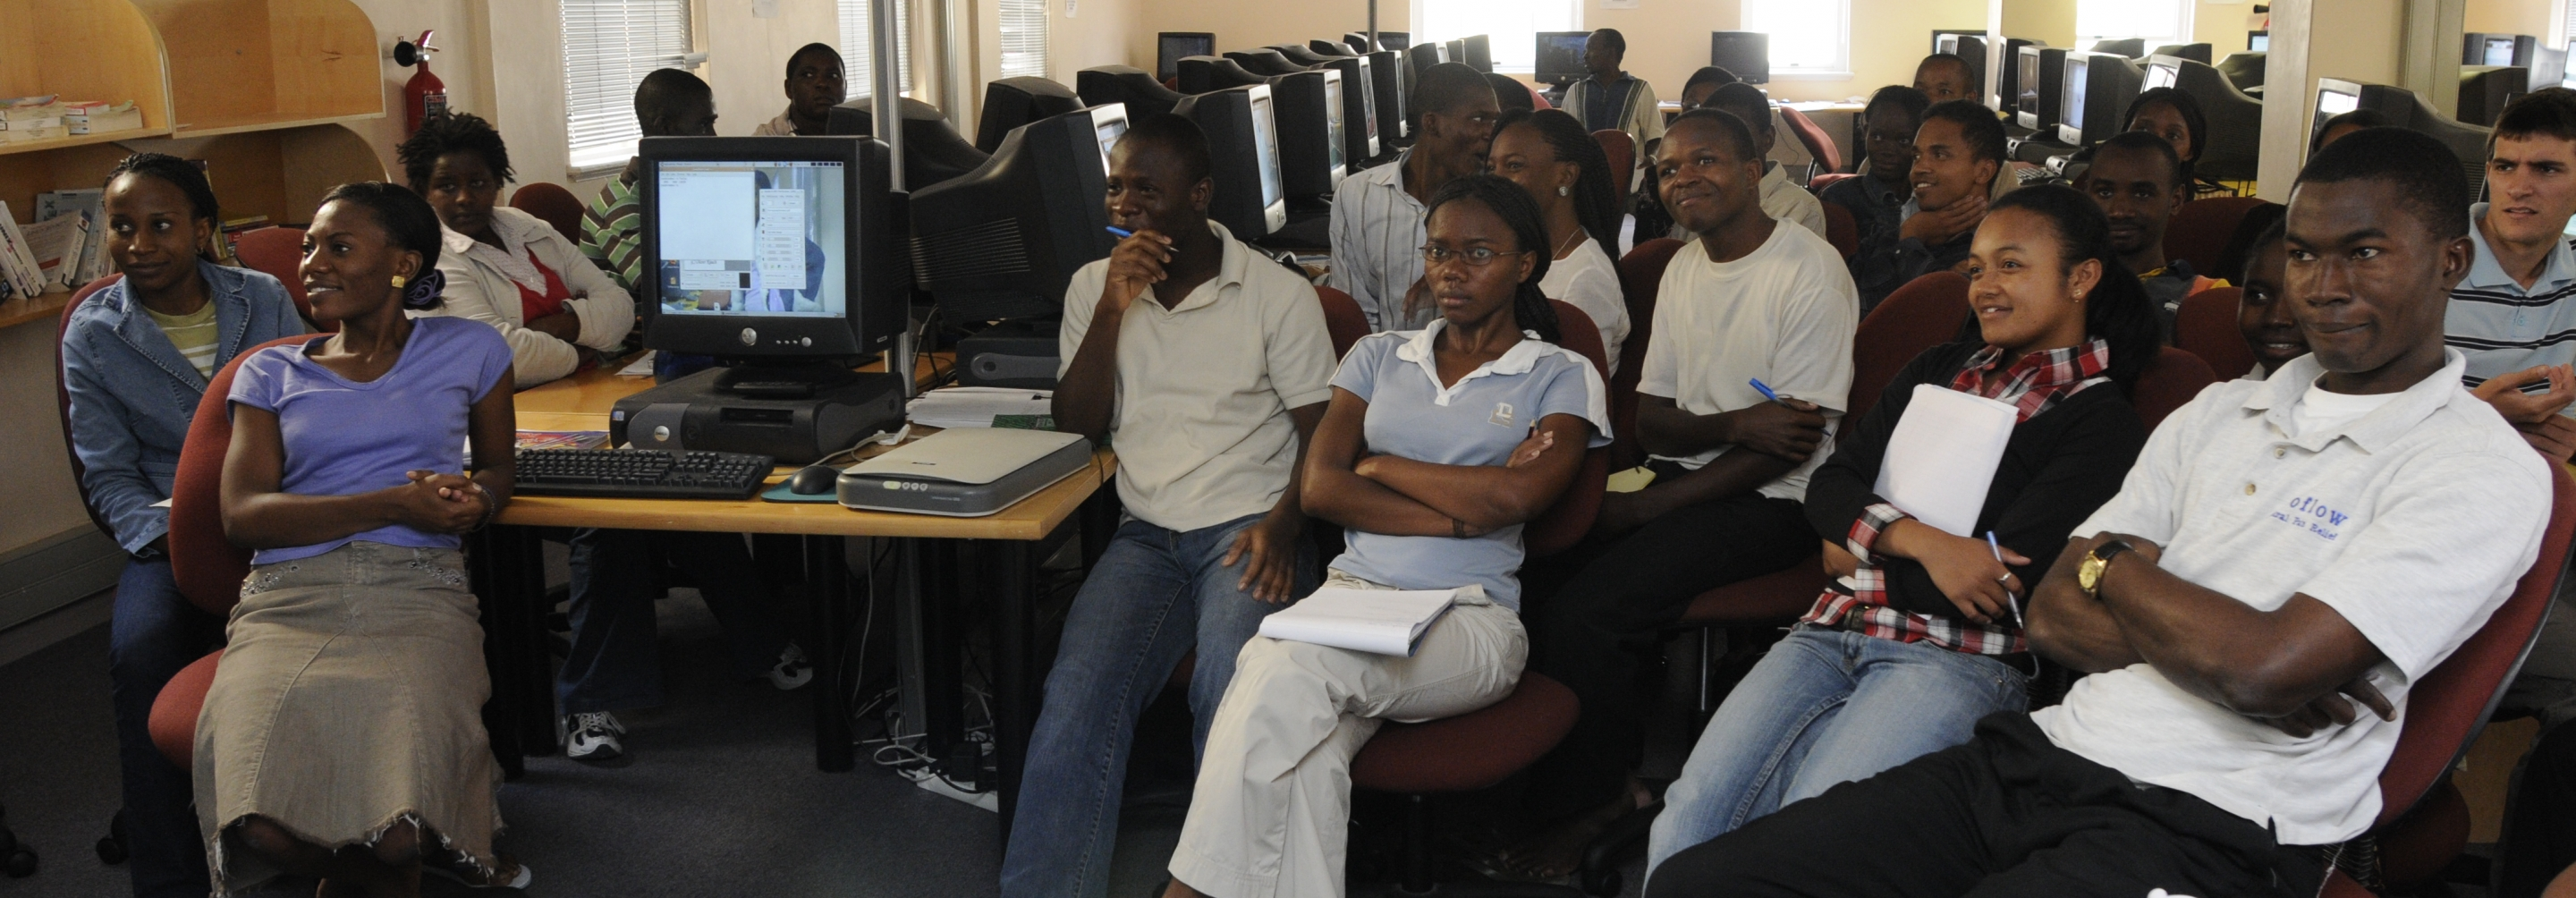 Group of African students in a computer lab